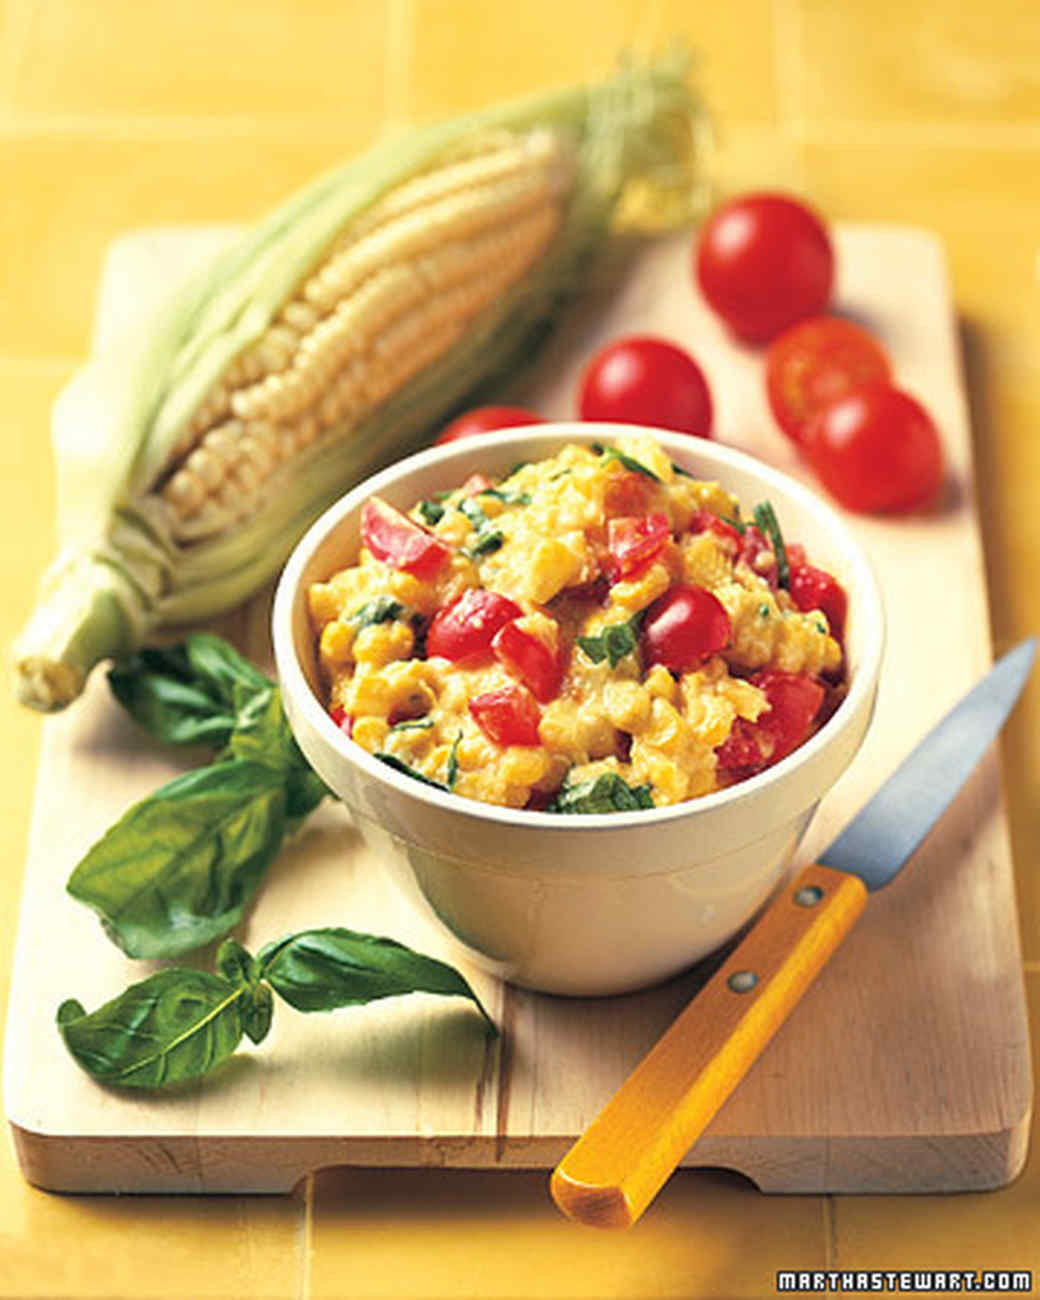 Corn Dip with Tomatoes and Basil